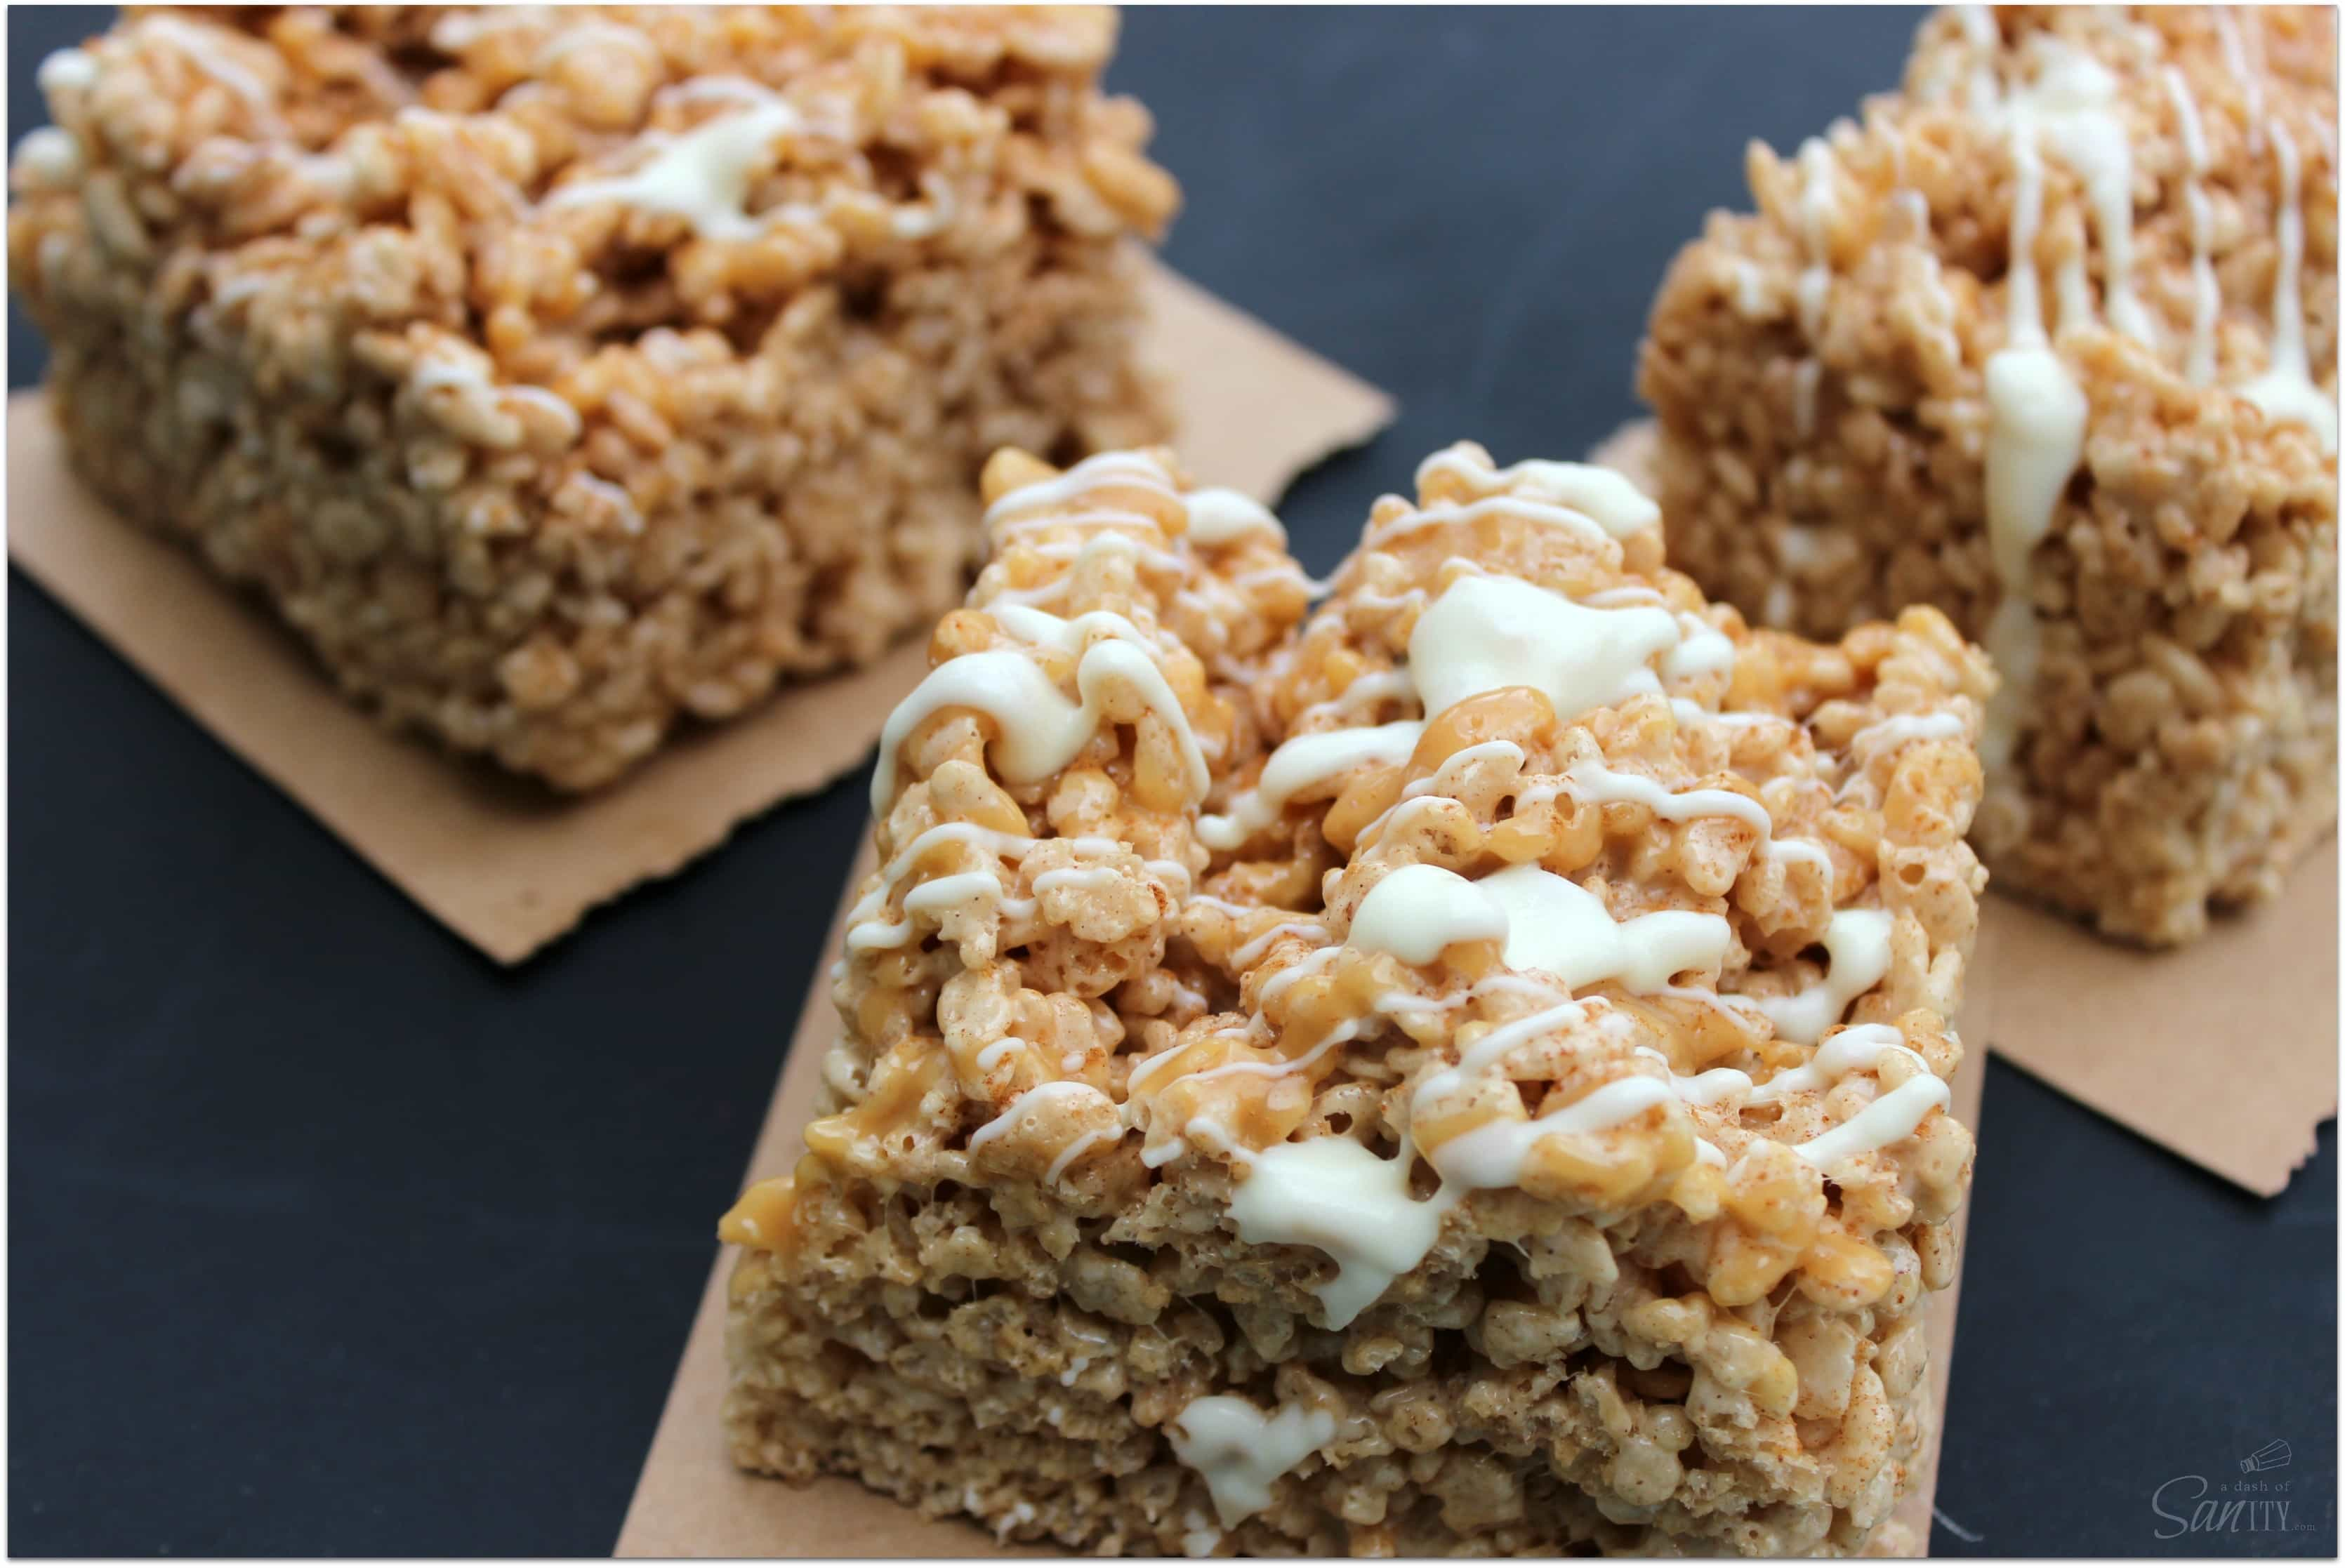 Cinnamon Dolce Rice Krispies Treats are made with gooey, creamy dulce de leche and caramel, making this a decadent Rice Krispies treat.